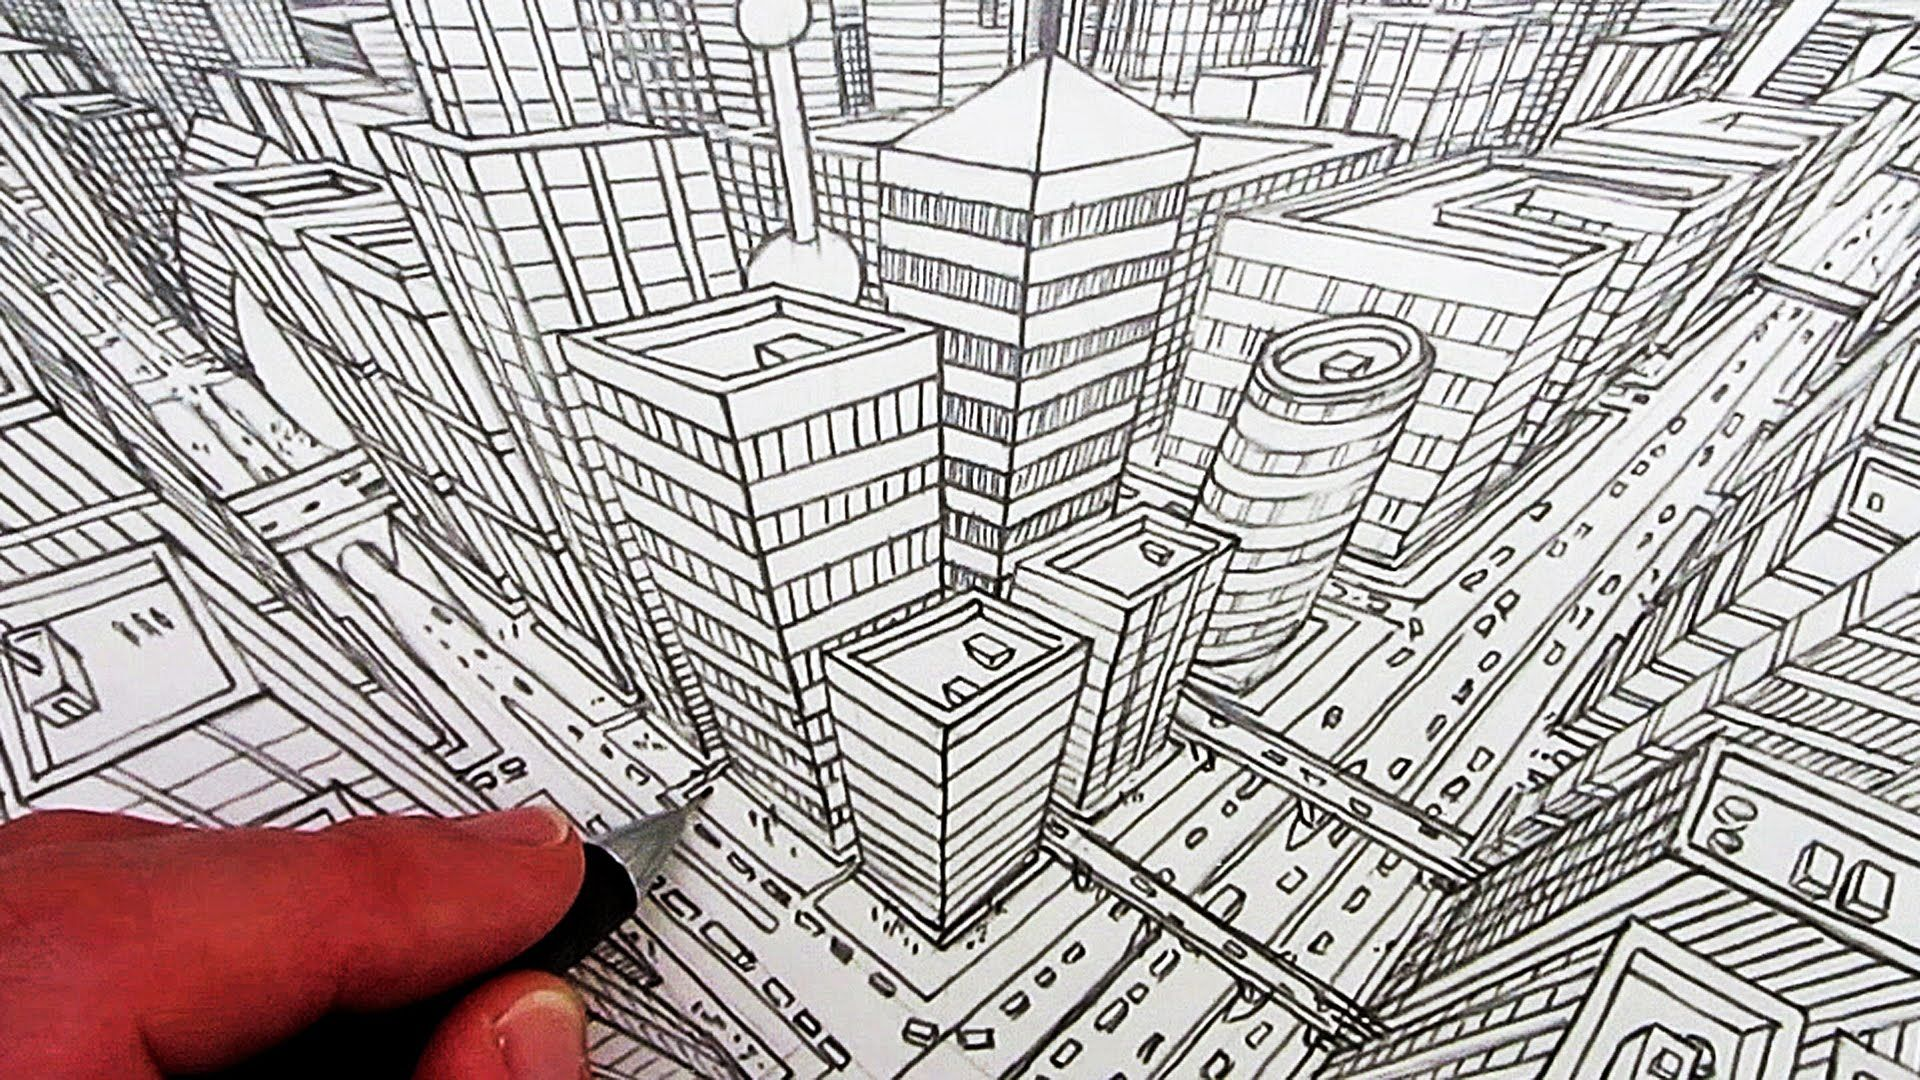 How To Draw A City In 3 Point Perspective